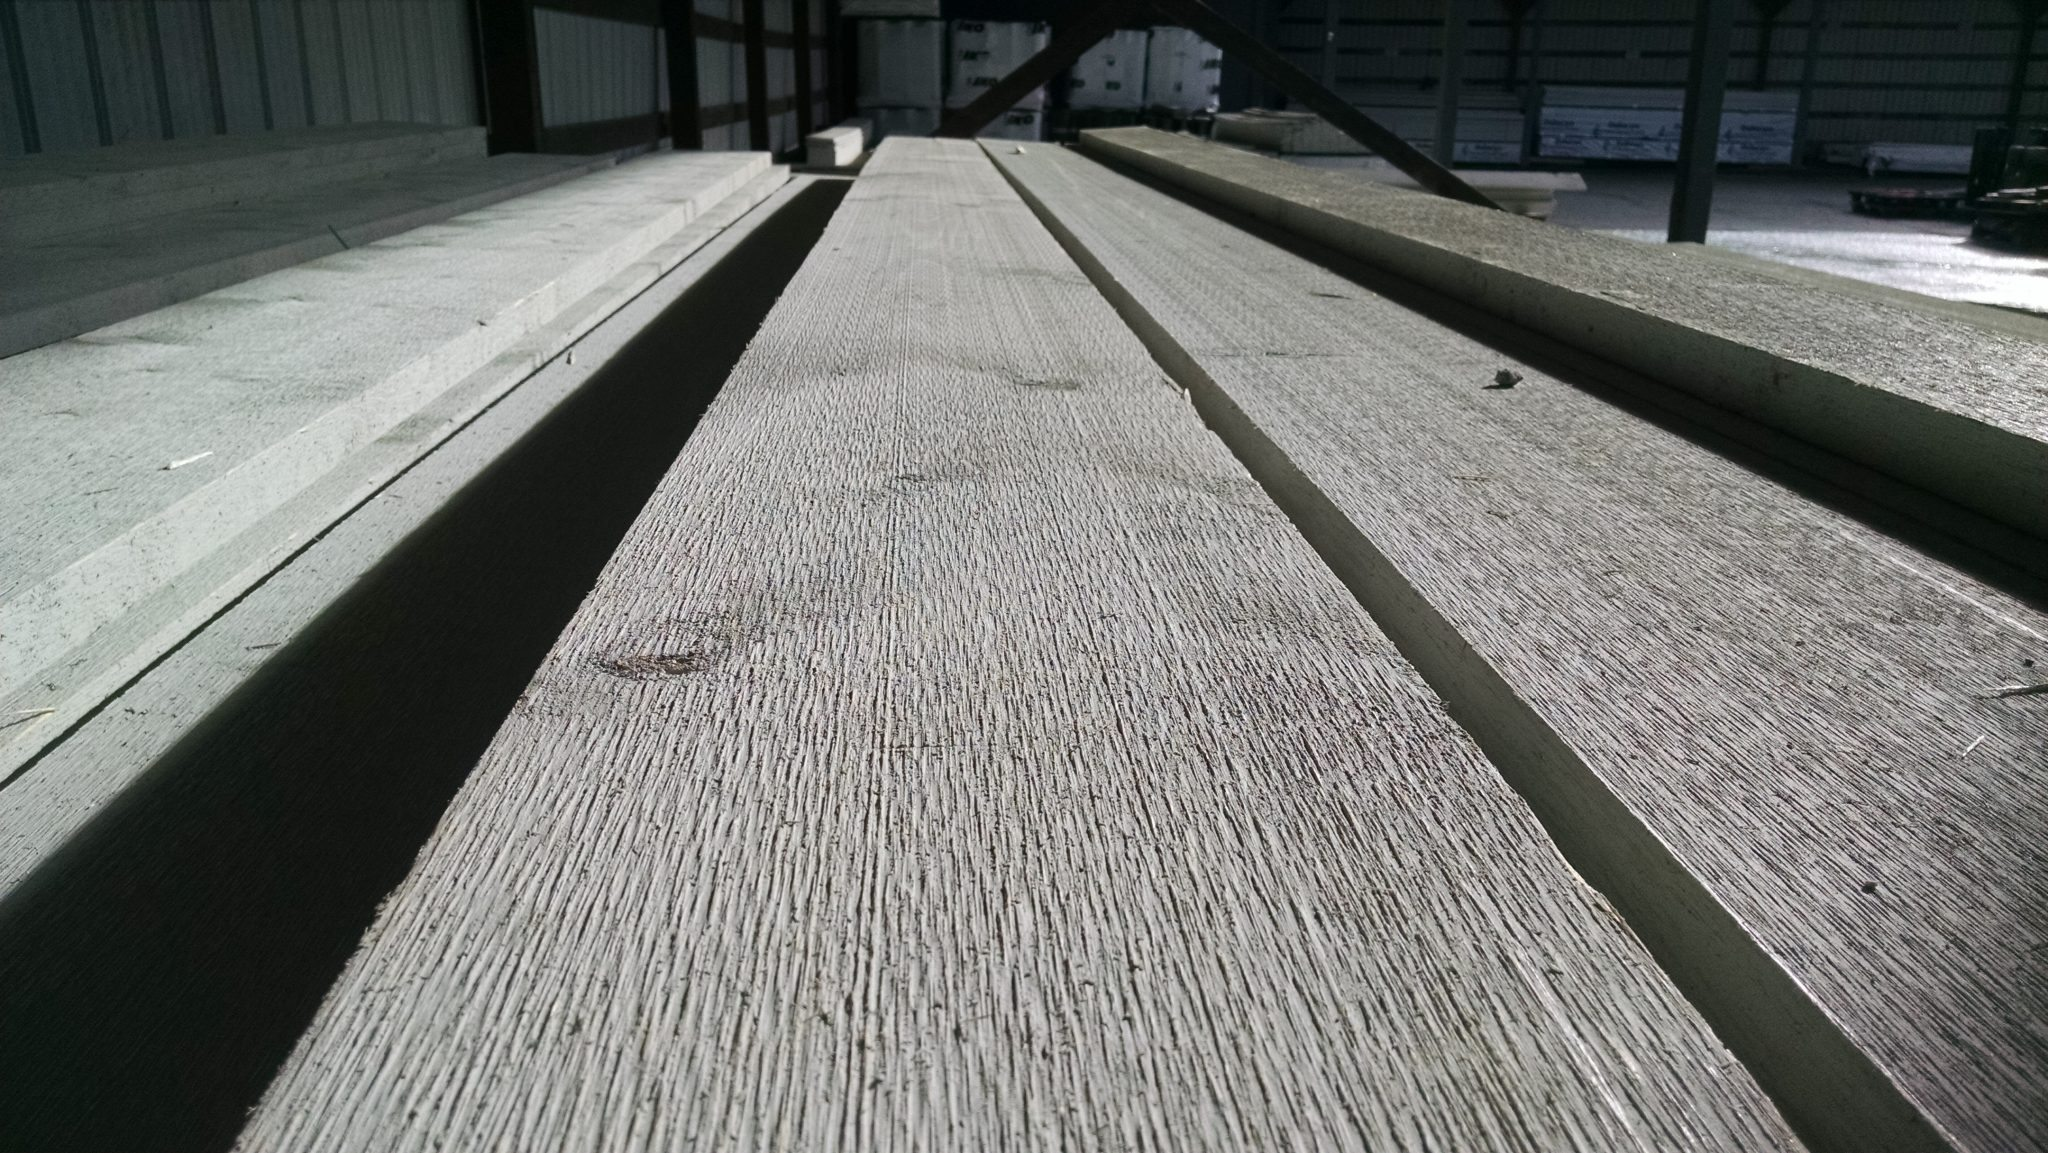 Fascia Board Lumber Supply & Chilliwack Building Supplies